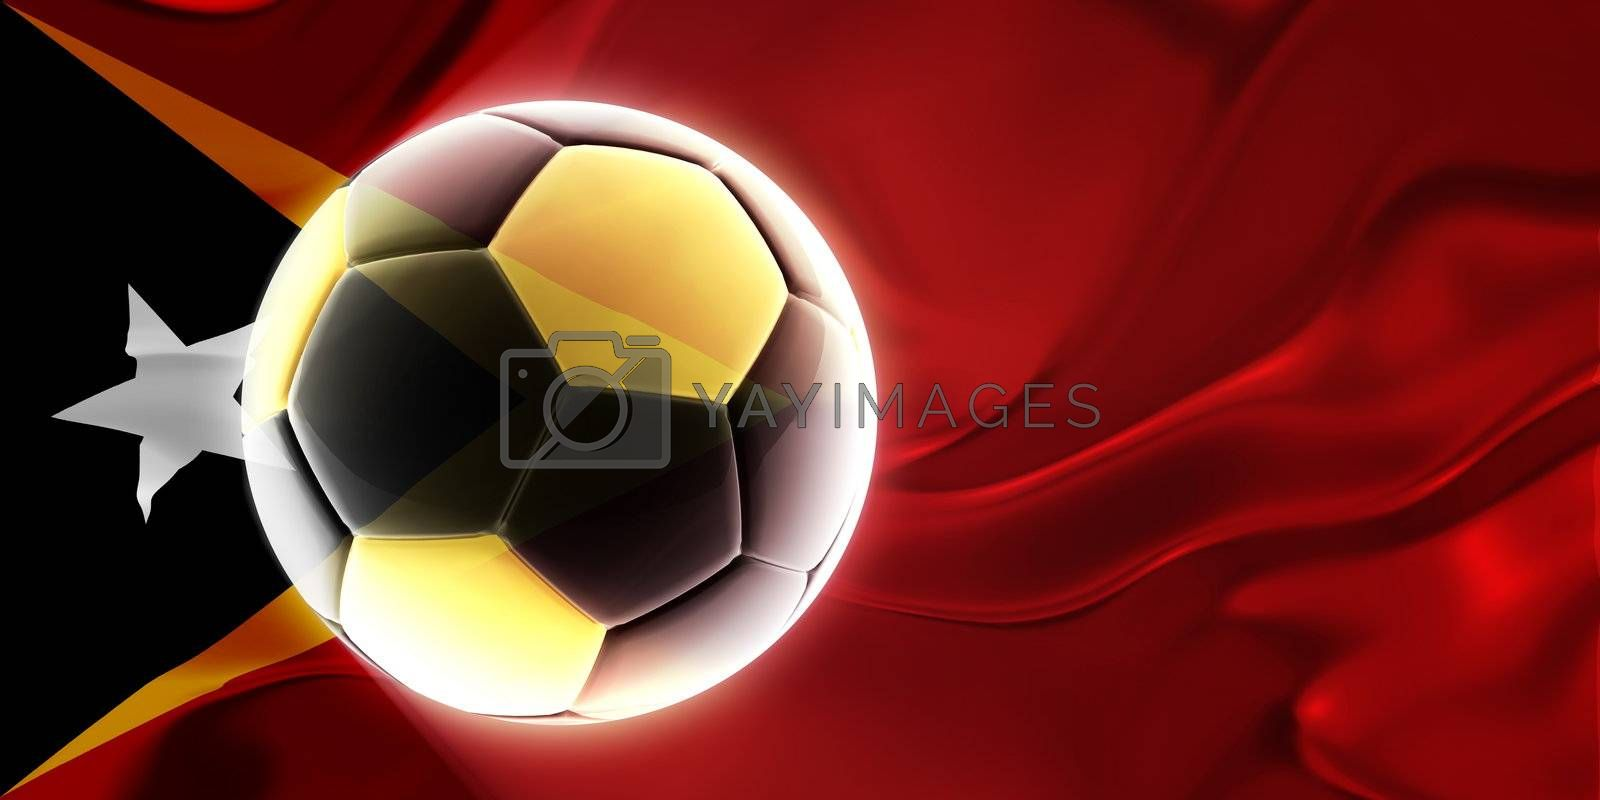 Flag of Timor-Leste, national country symbol illustration wavy fabric sports soccer football